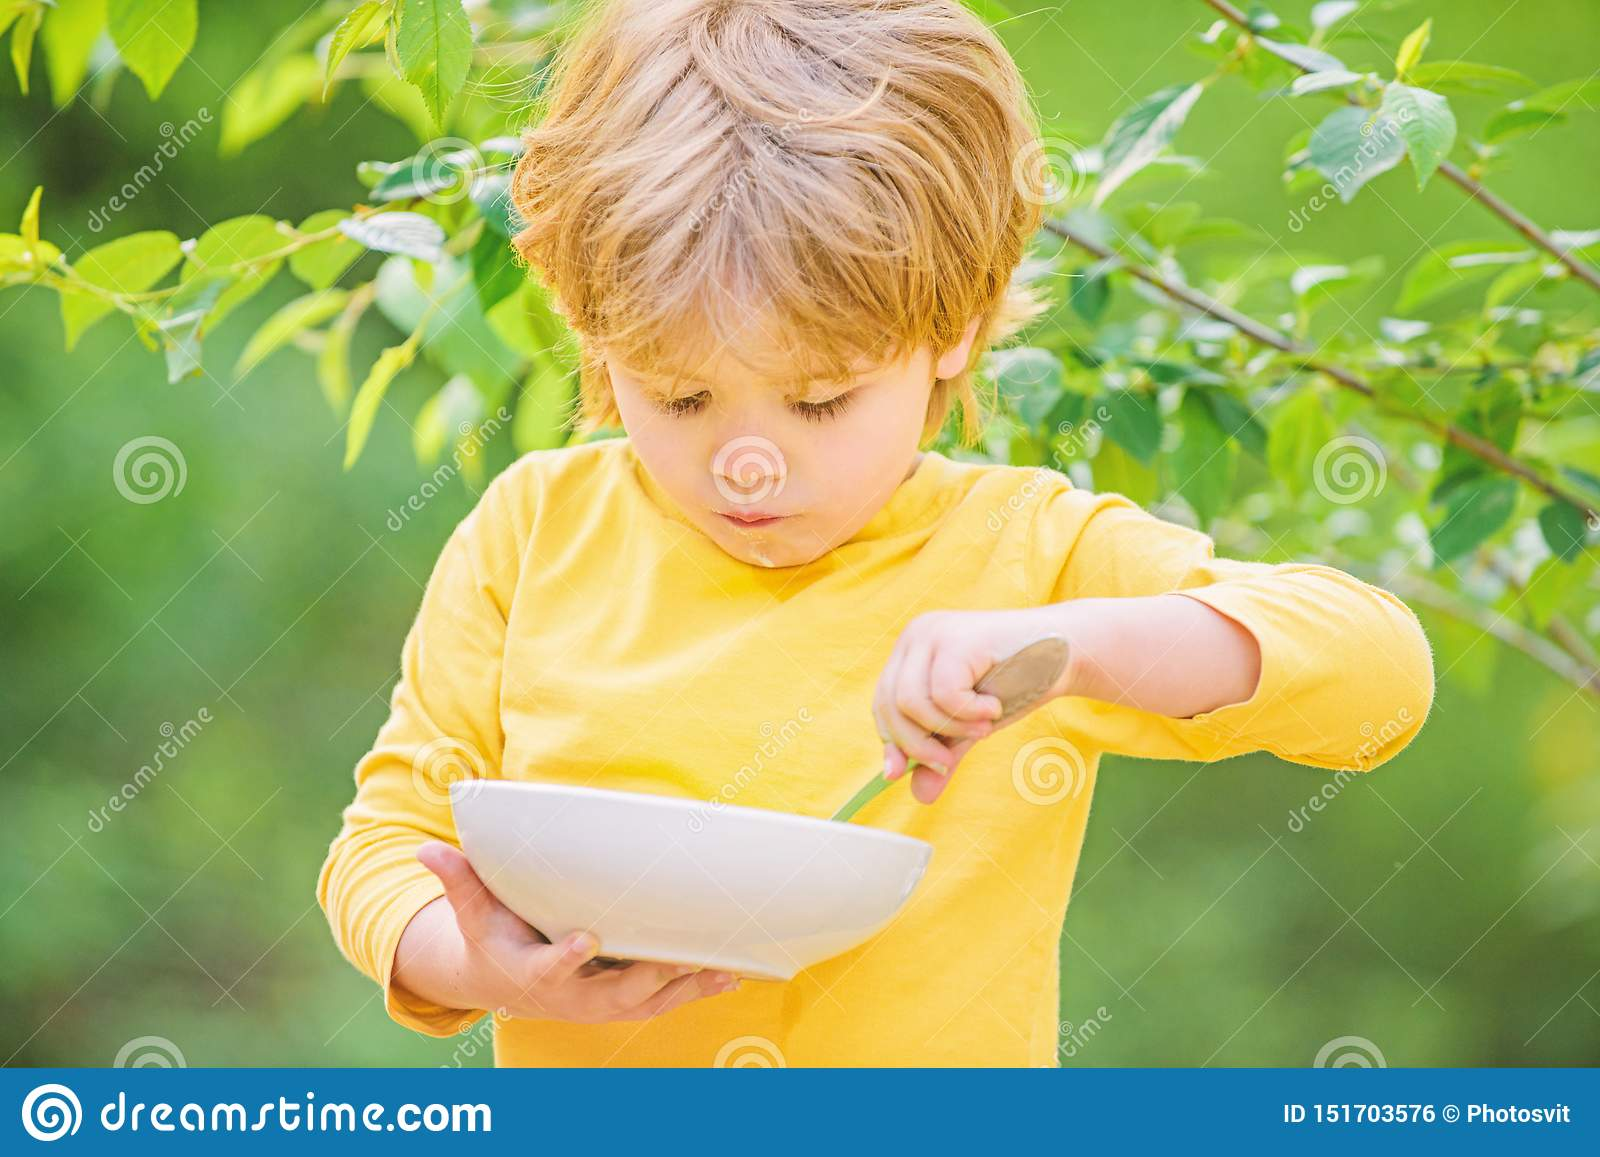 Son And Eating Milk Porridge Cereal For Breakfast Good Morning Small Boy Eating Outdoor Child Development Little Stock Photo Image Of Exploring Health 151703576